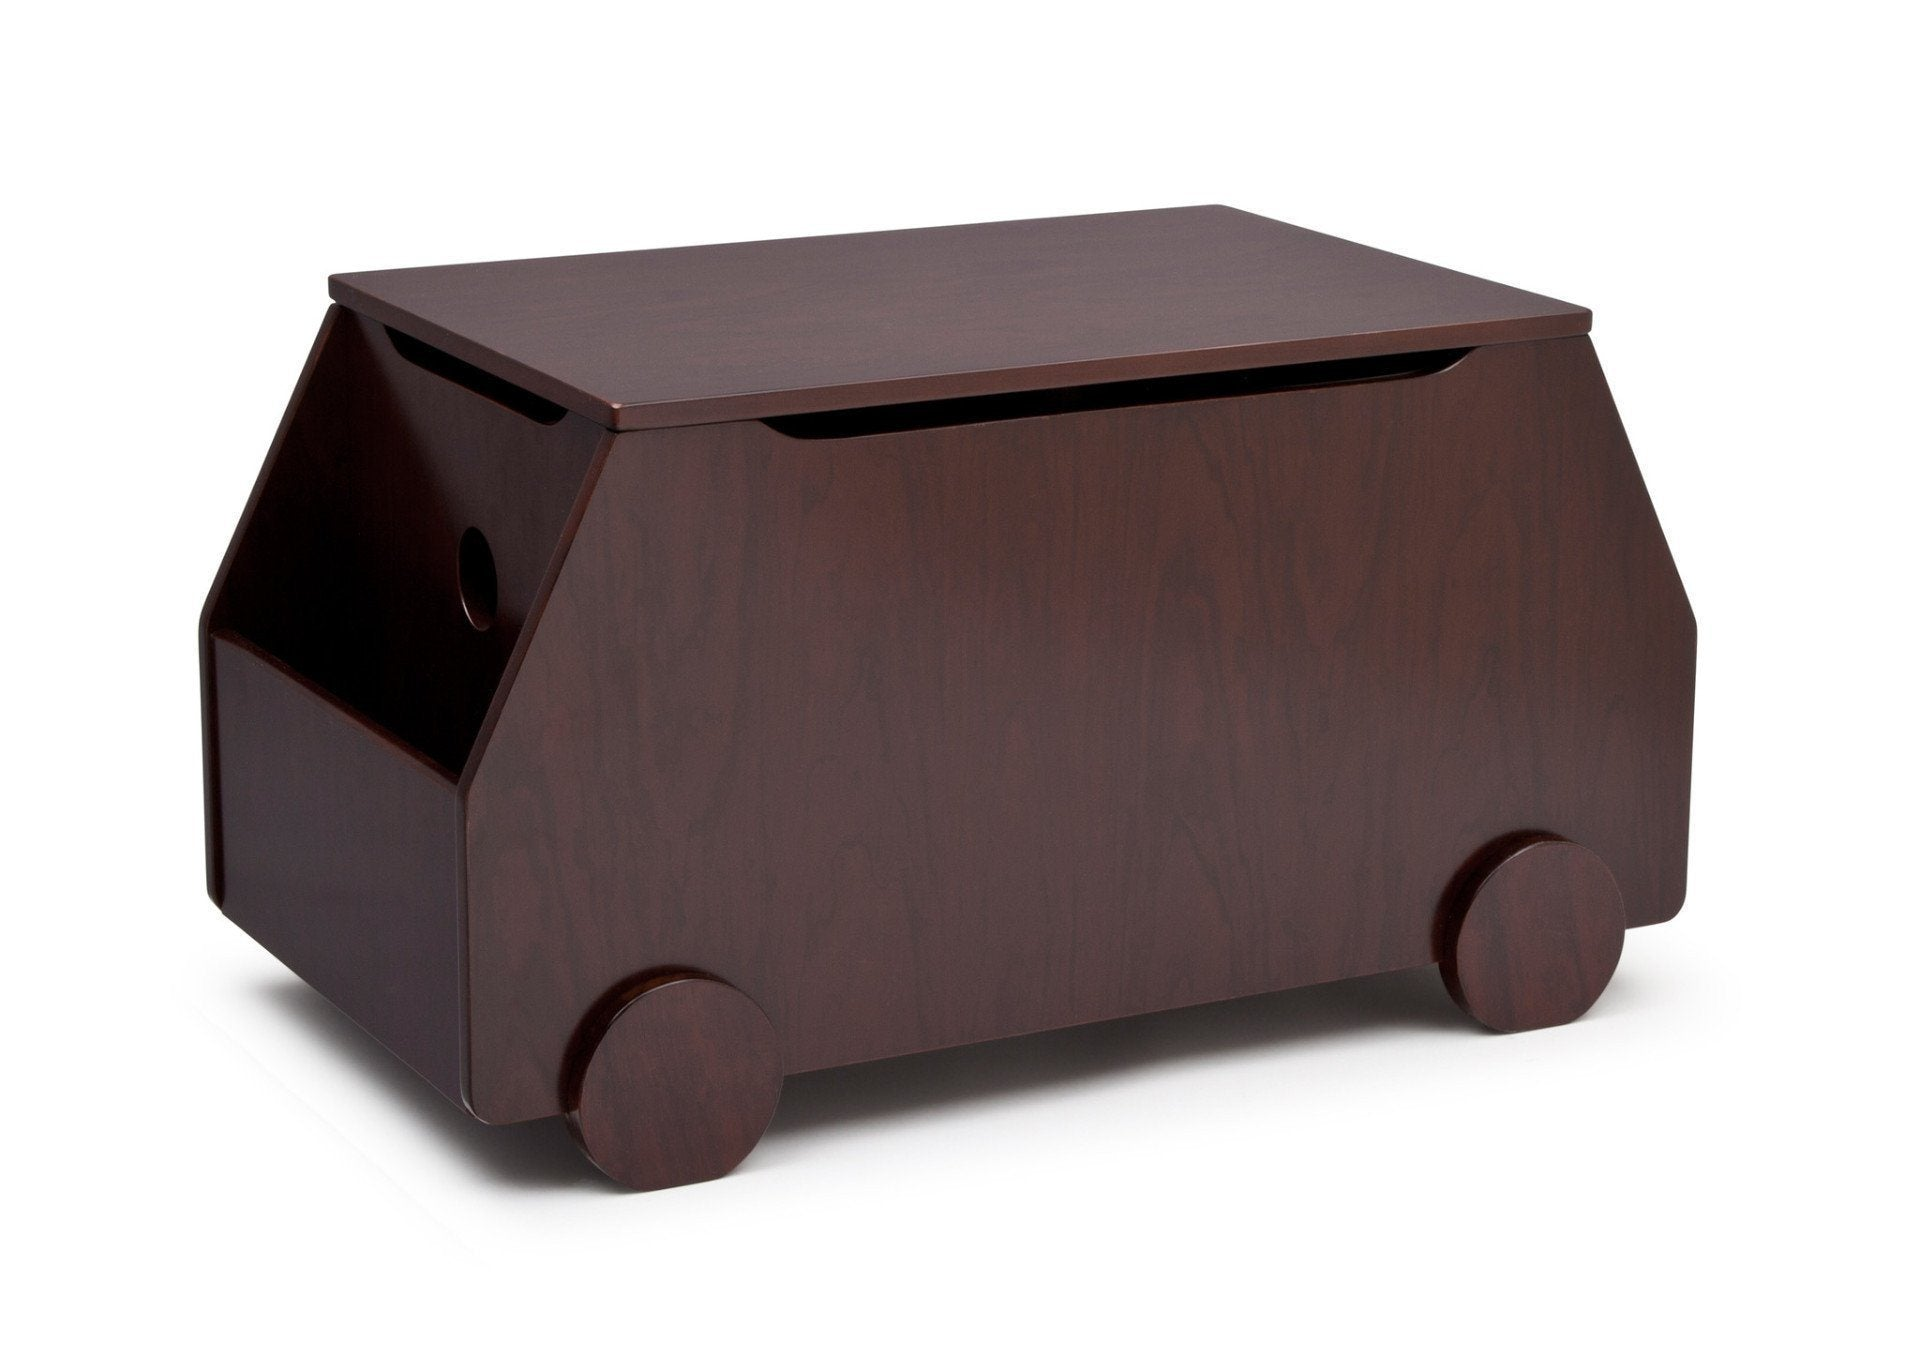 Delta Children Black Cherry Espresso (607) Metro Toy Box Left Side View b1b